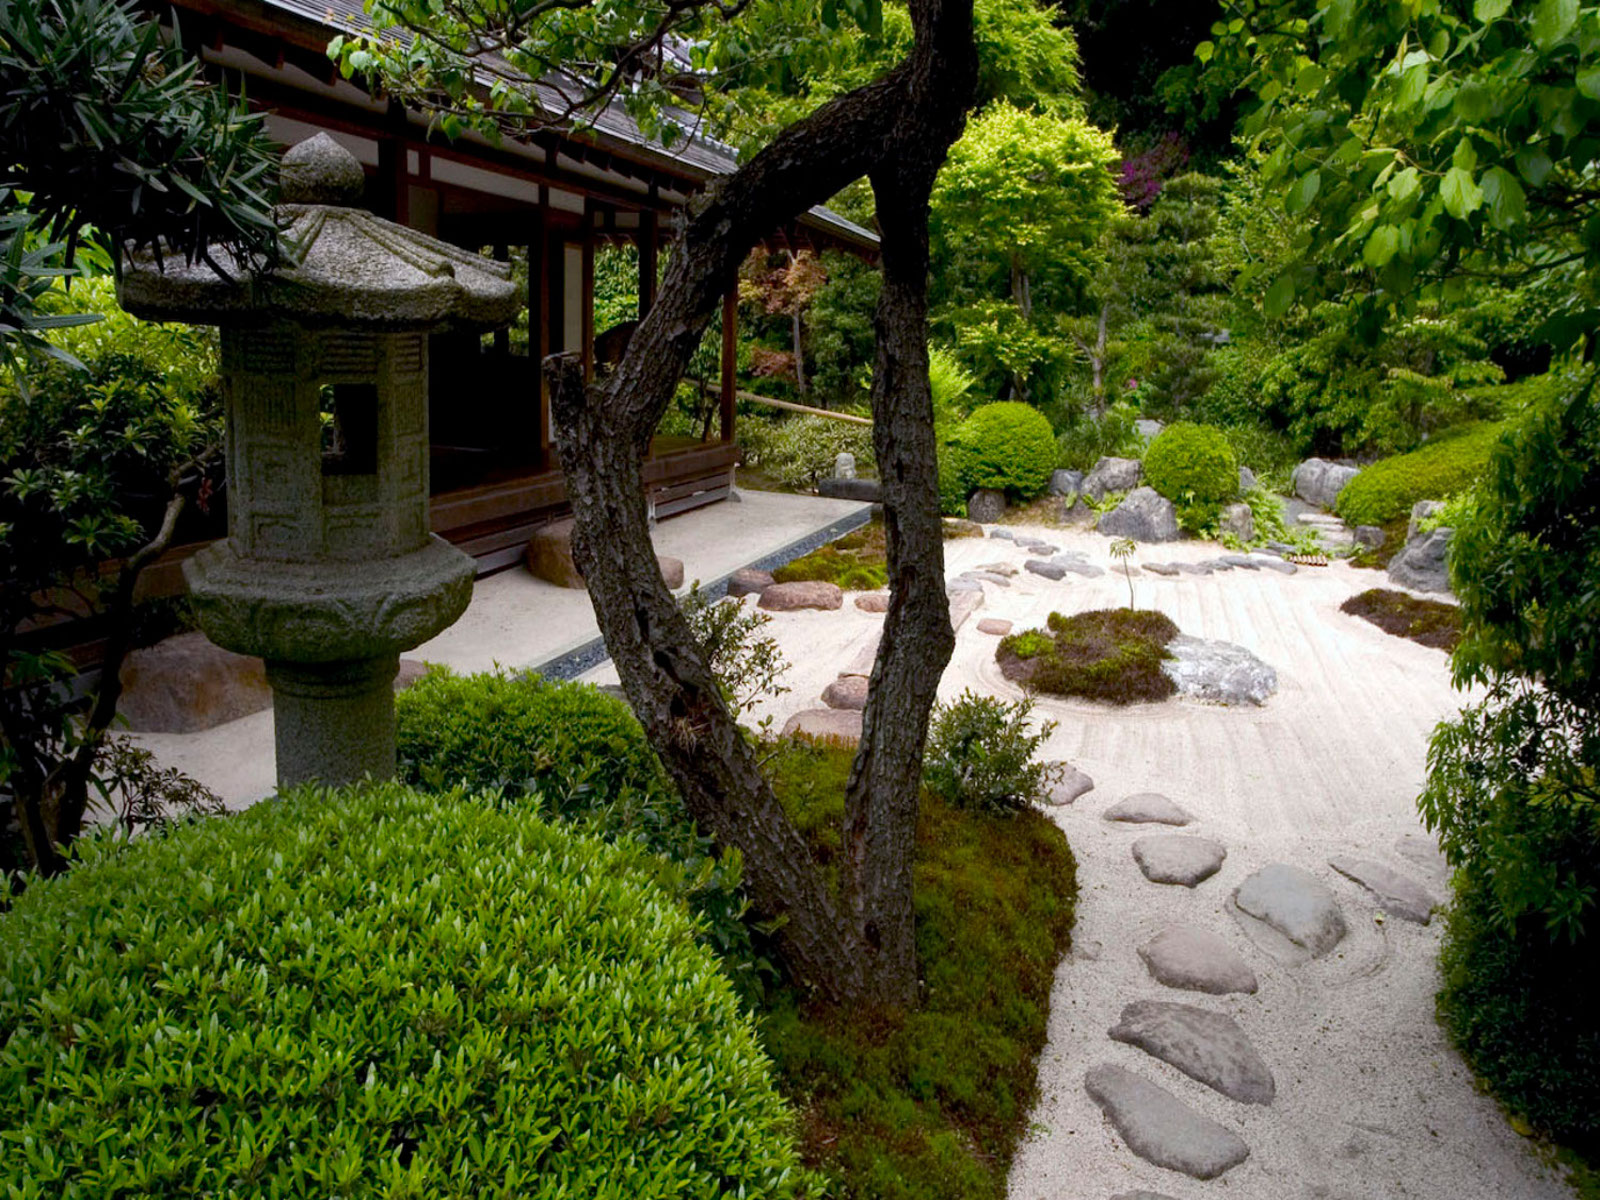 Zen garden wallpaper hd wallpaper pictures gallery for Small japanese garden designs ideas